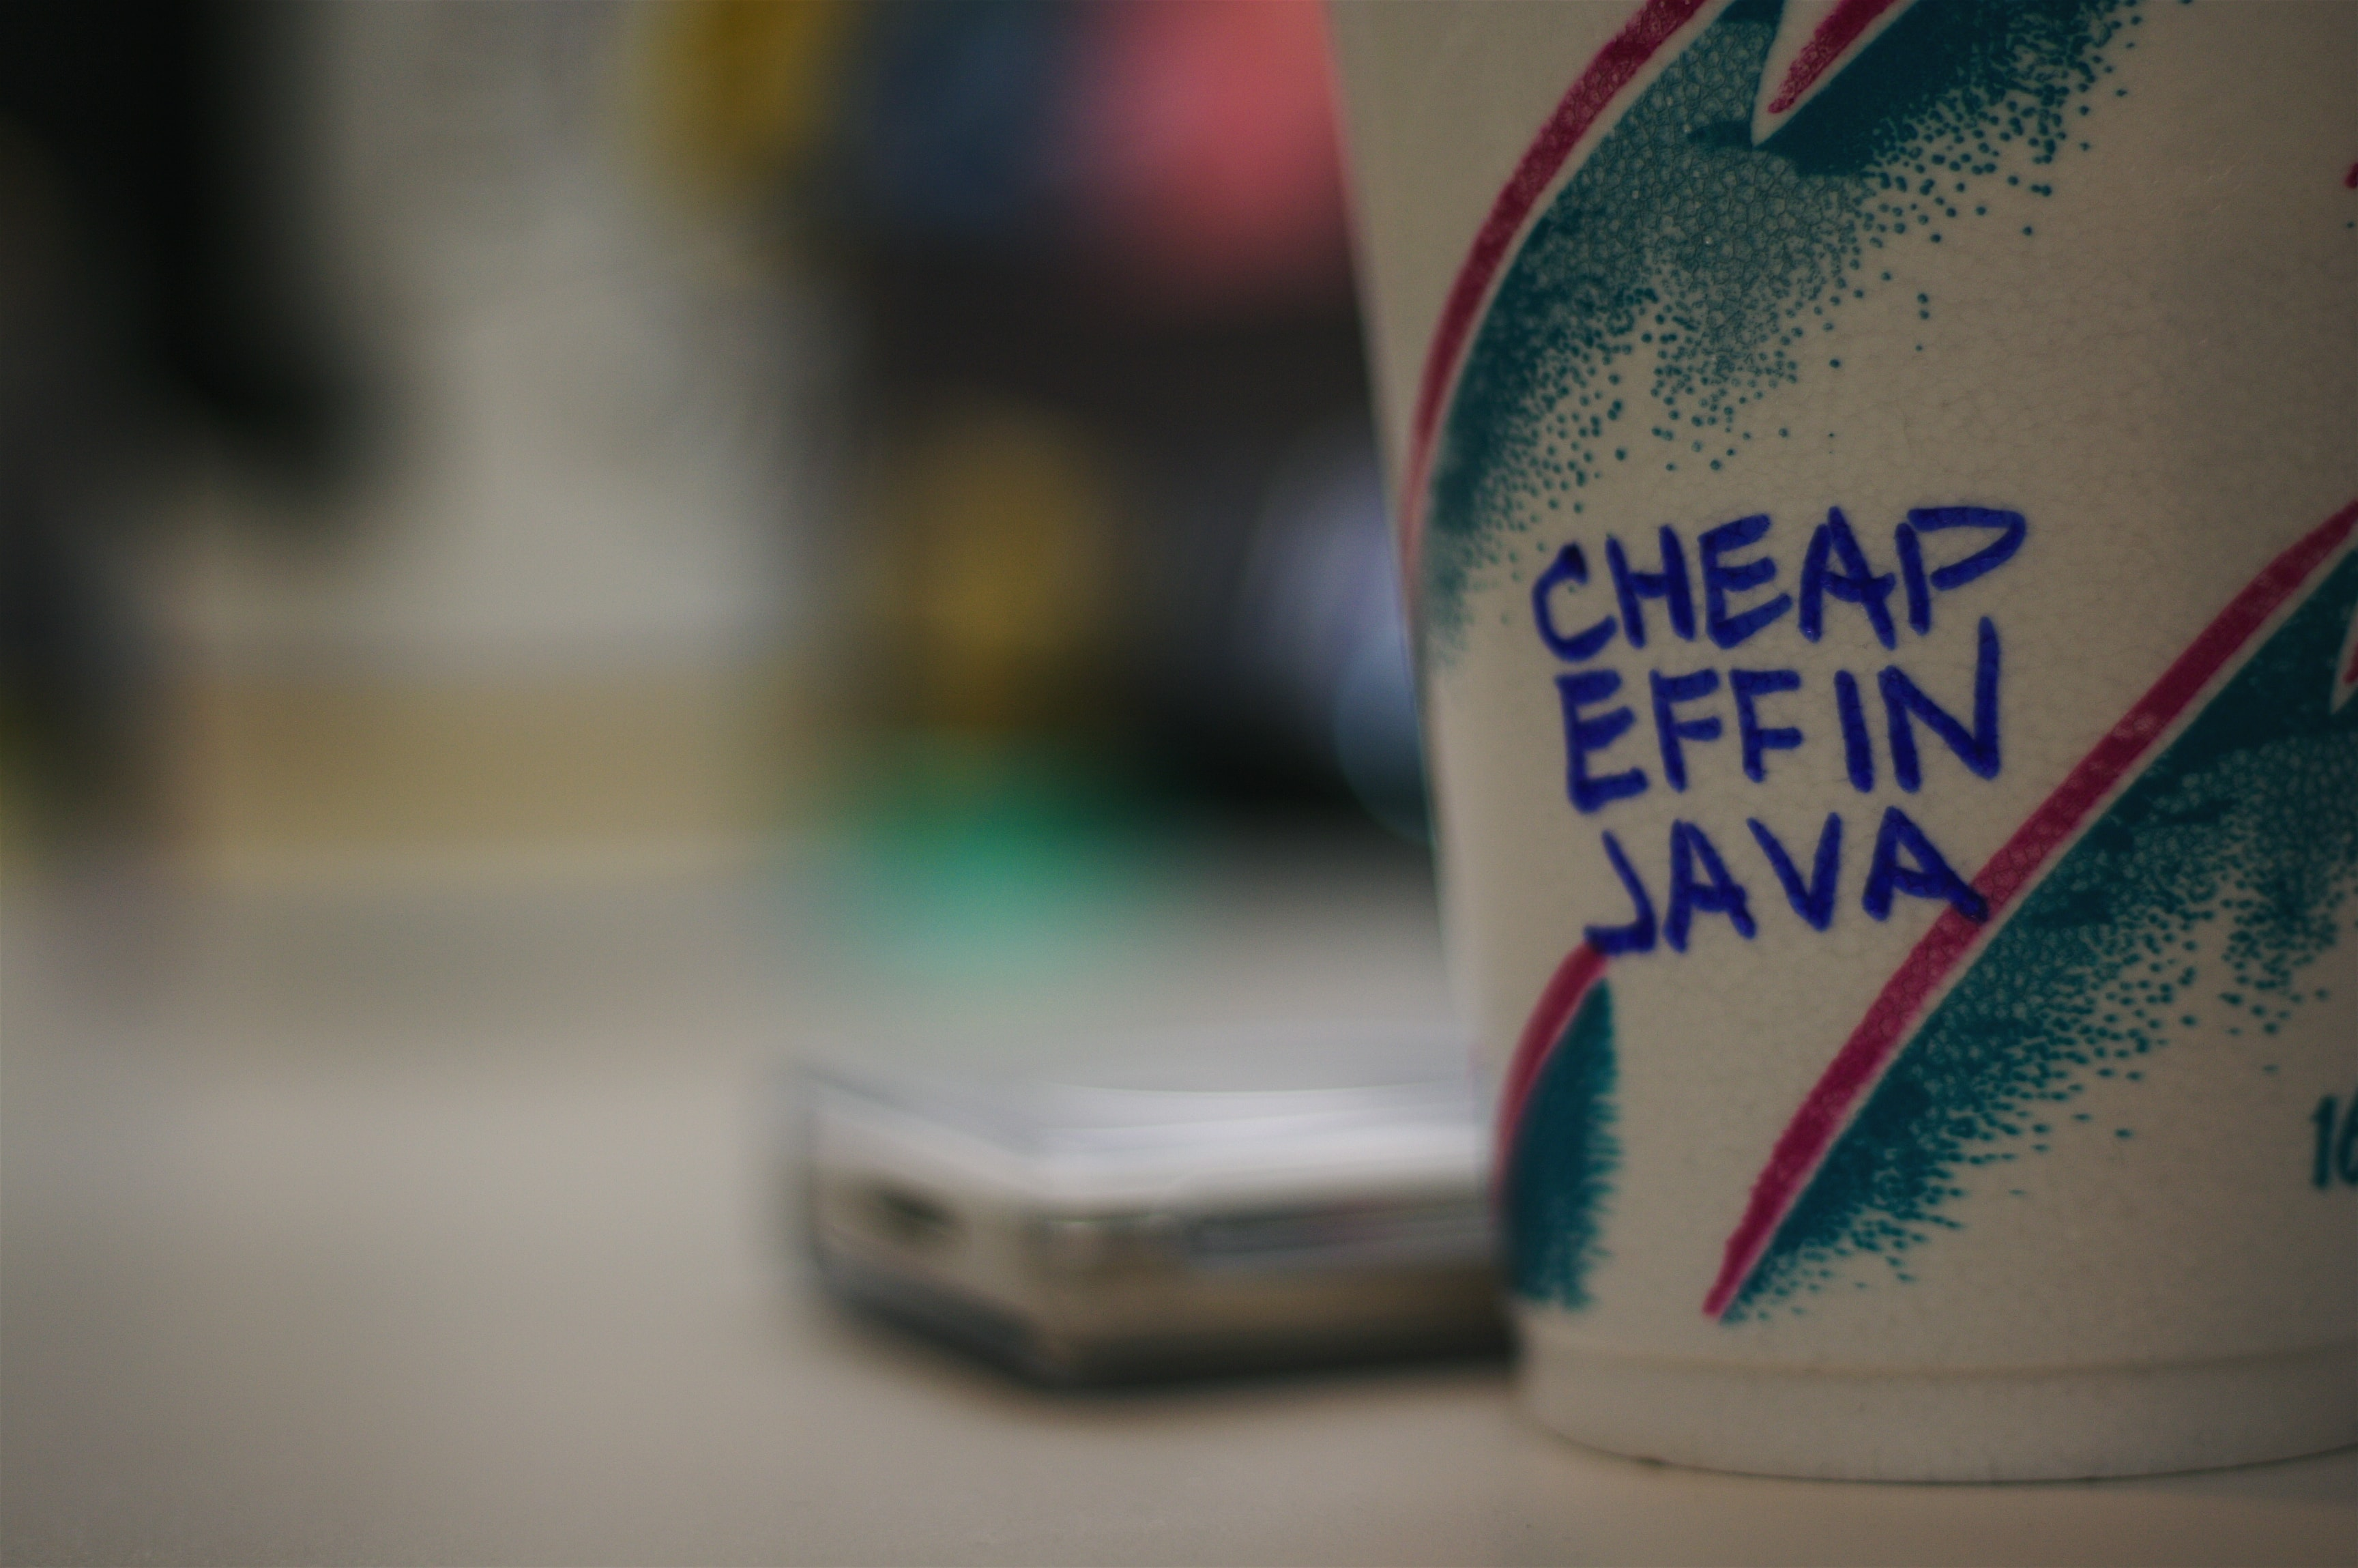 cheap elfin java coffee cup